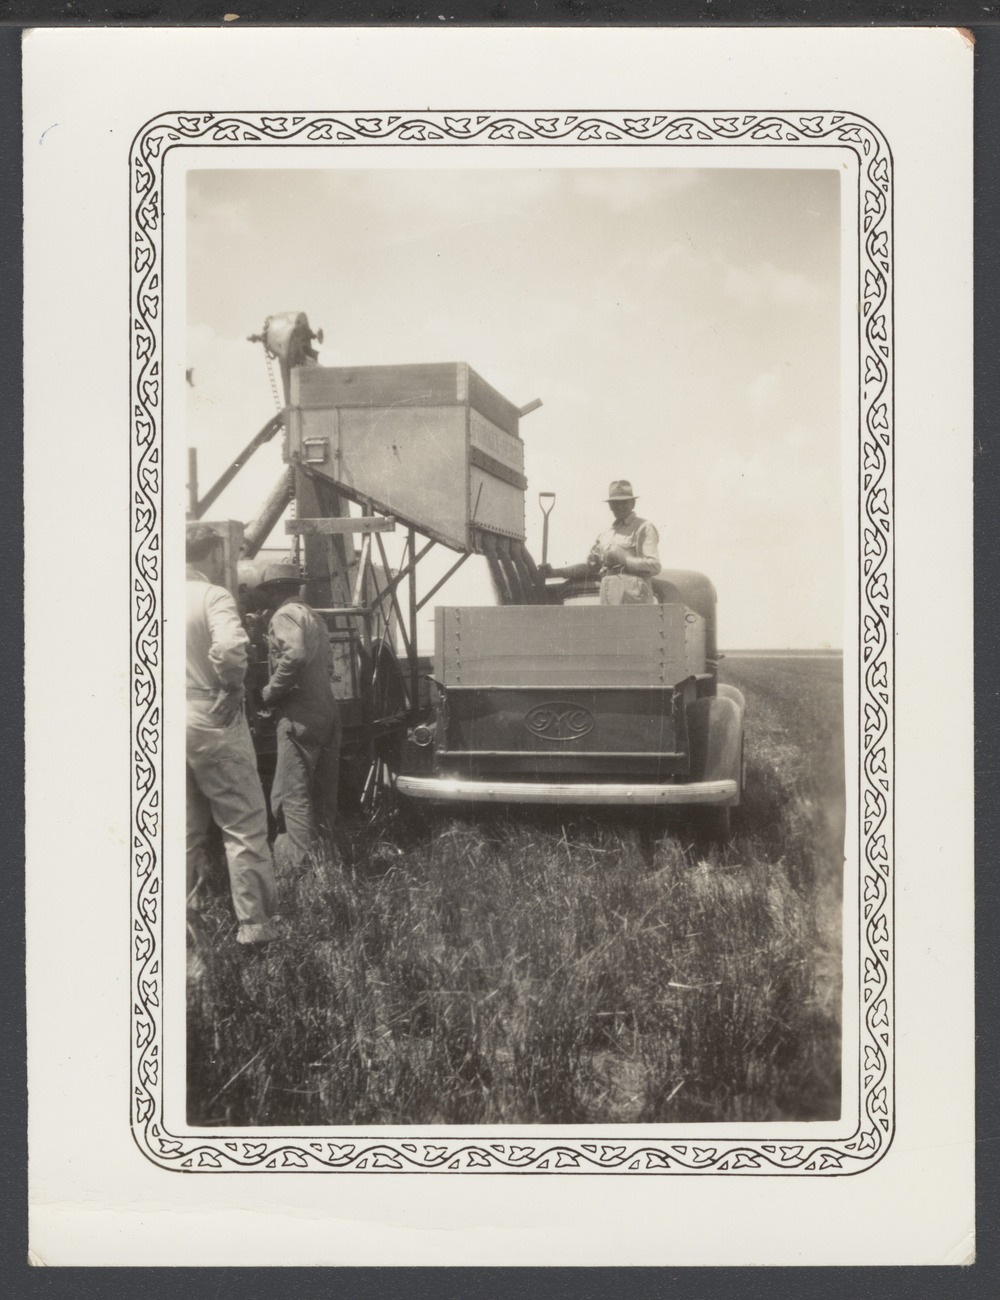 Wheat harvest in Gray County, Kansas